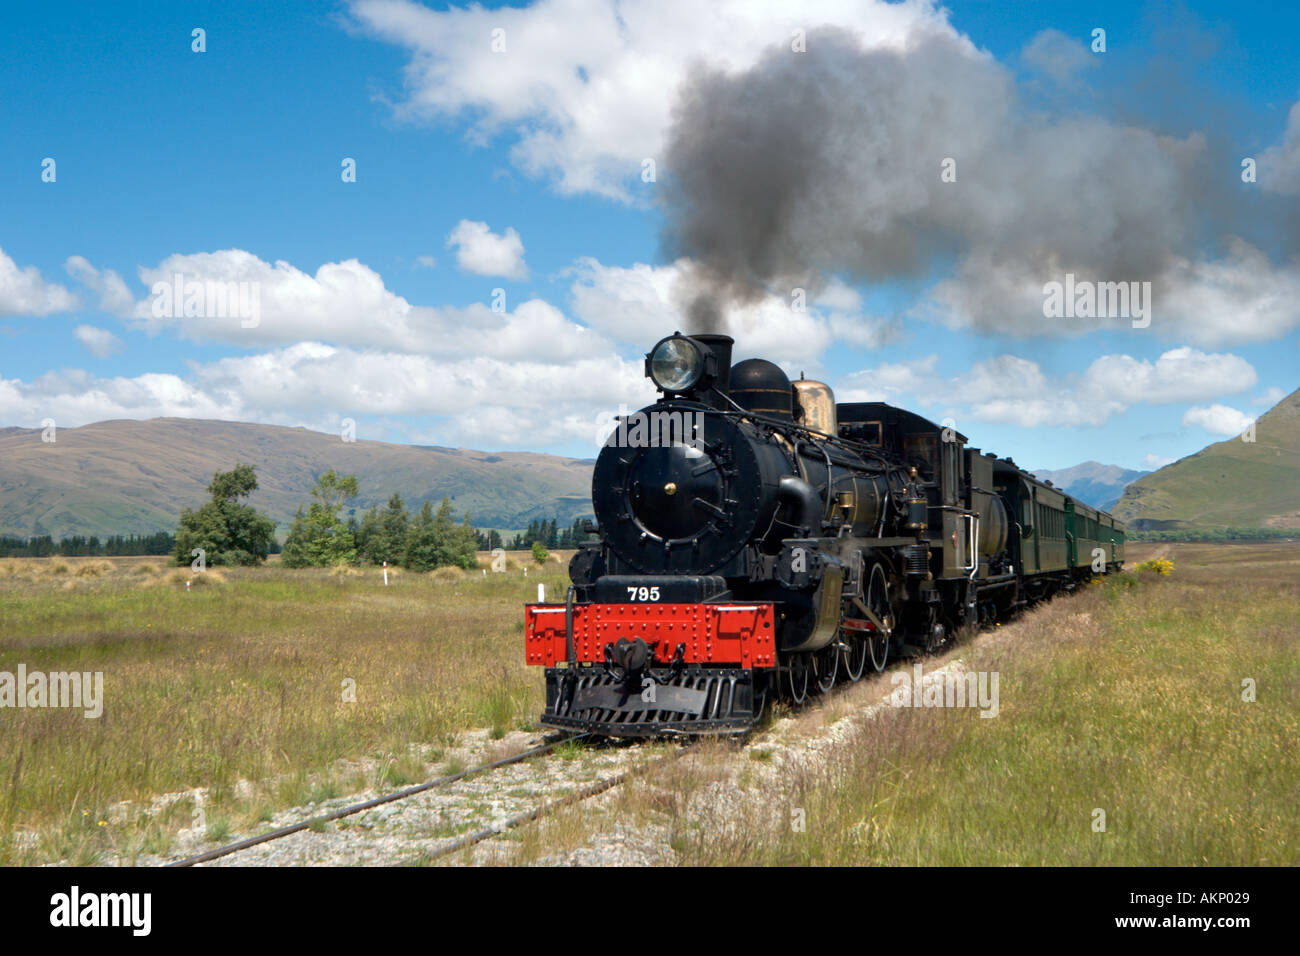 The Kingston Flyer steam train just outside Kingston, near Queenstown, South Island, New Zealand Stock Photo